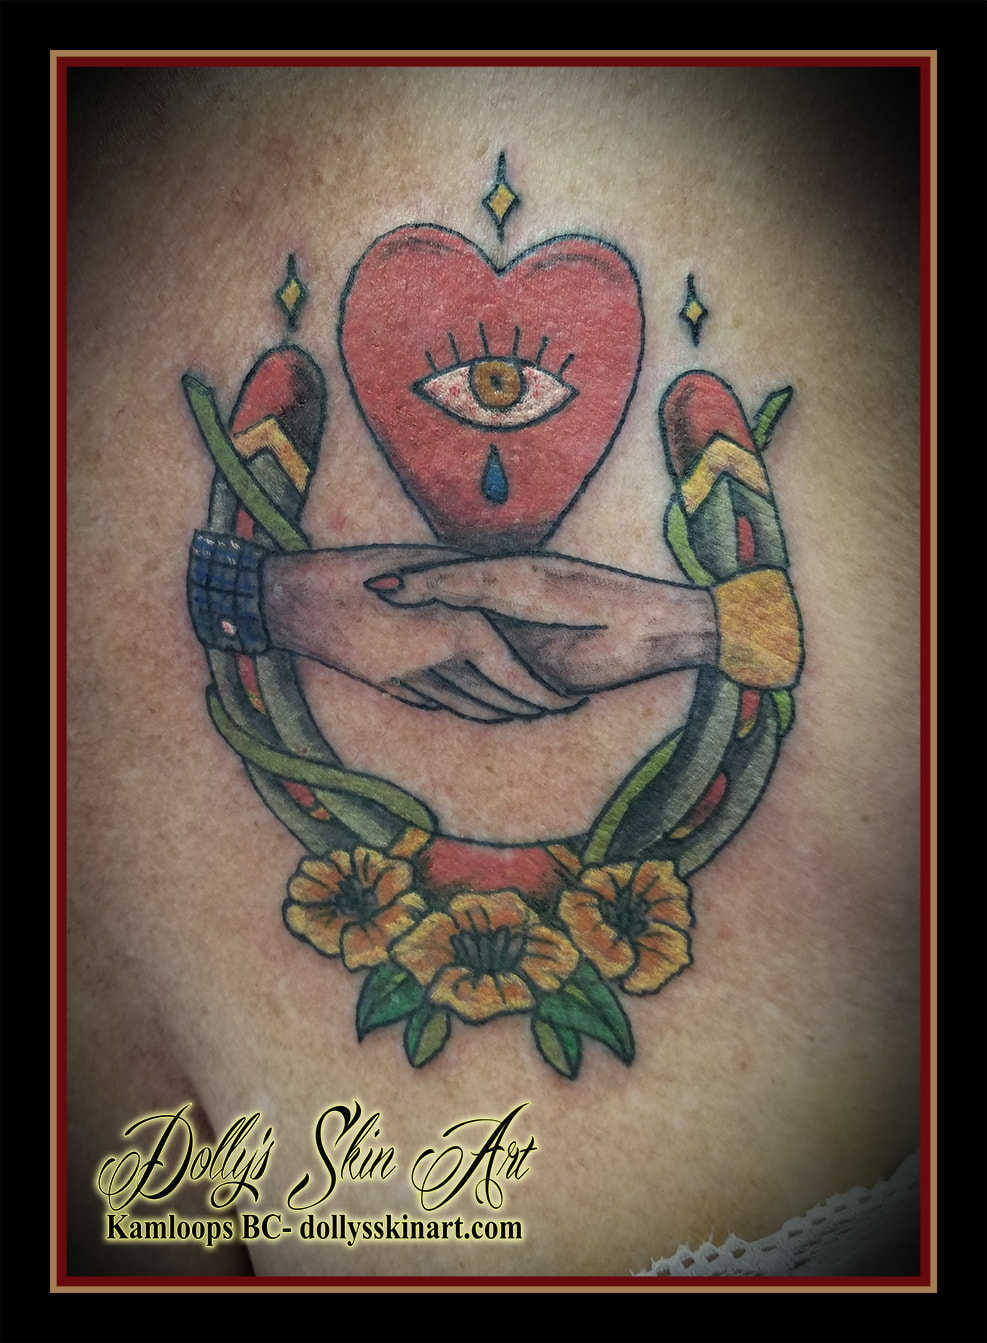 traditional colour horseshoe hands heart eye flowers tattoo kamloops dolly's skin art